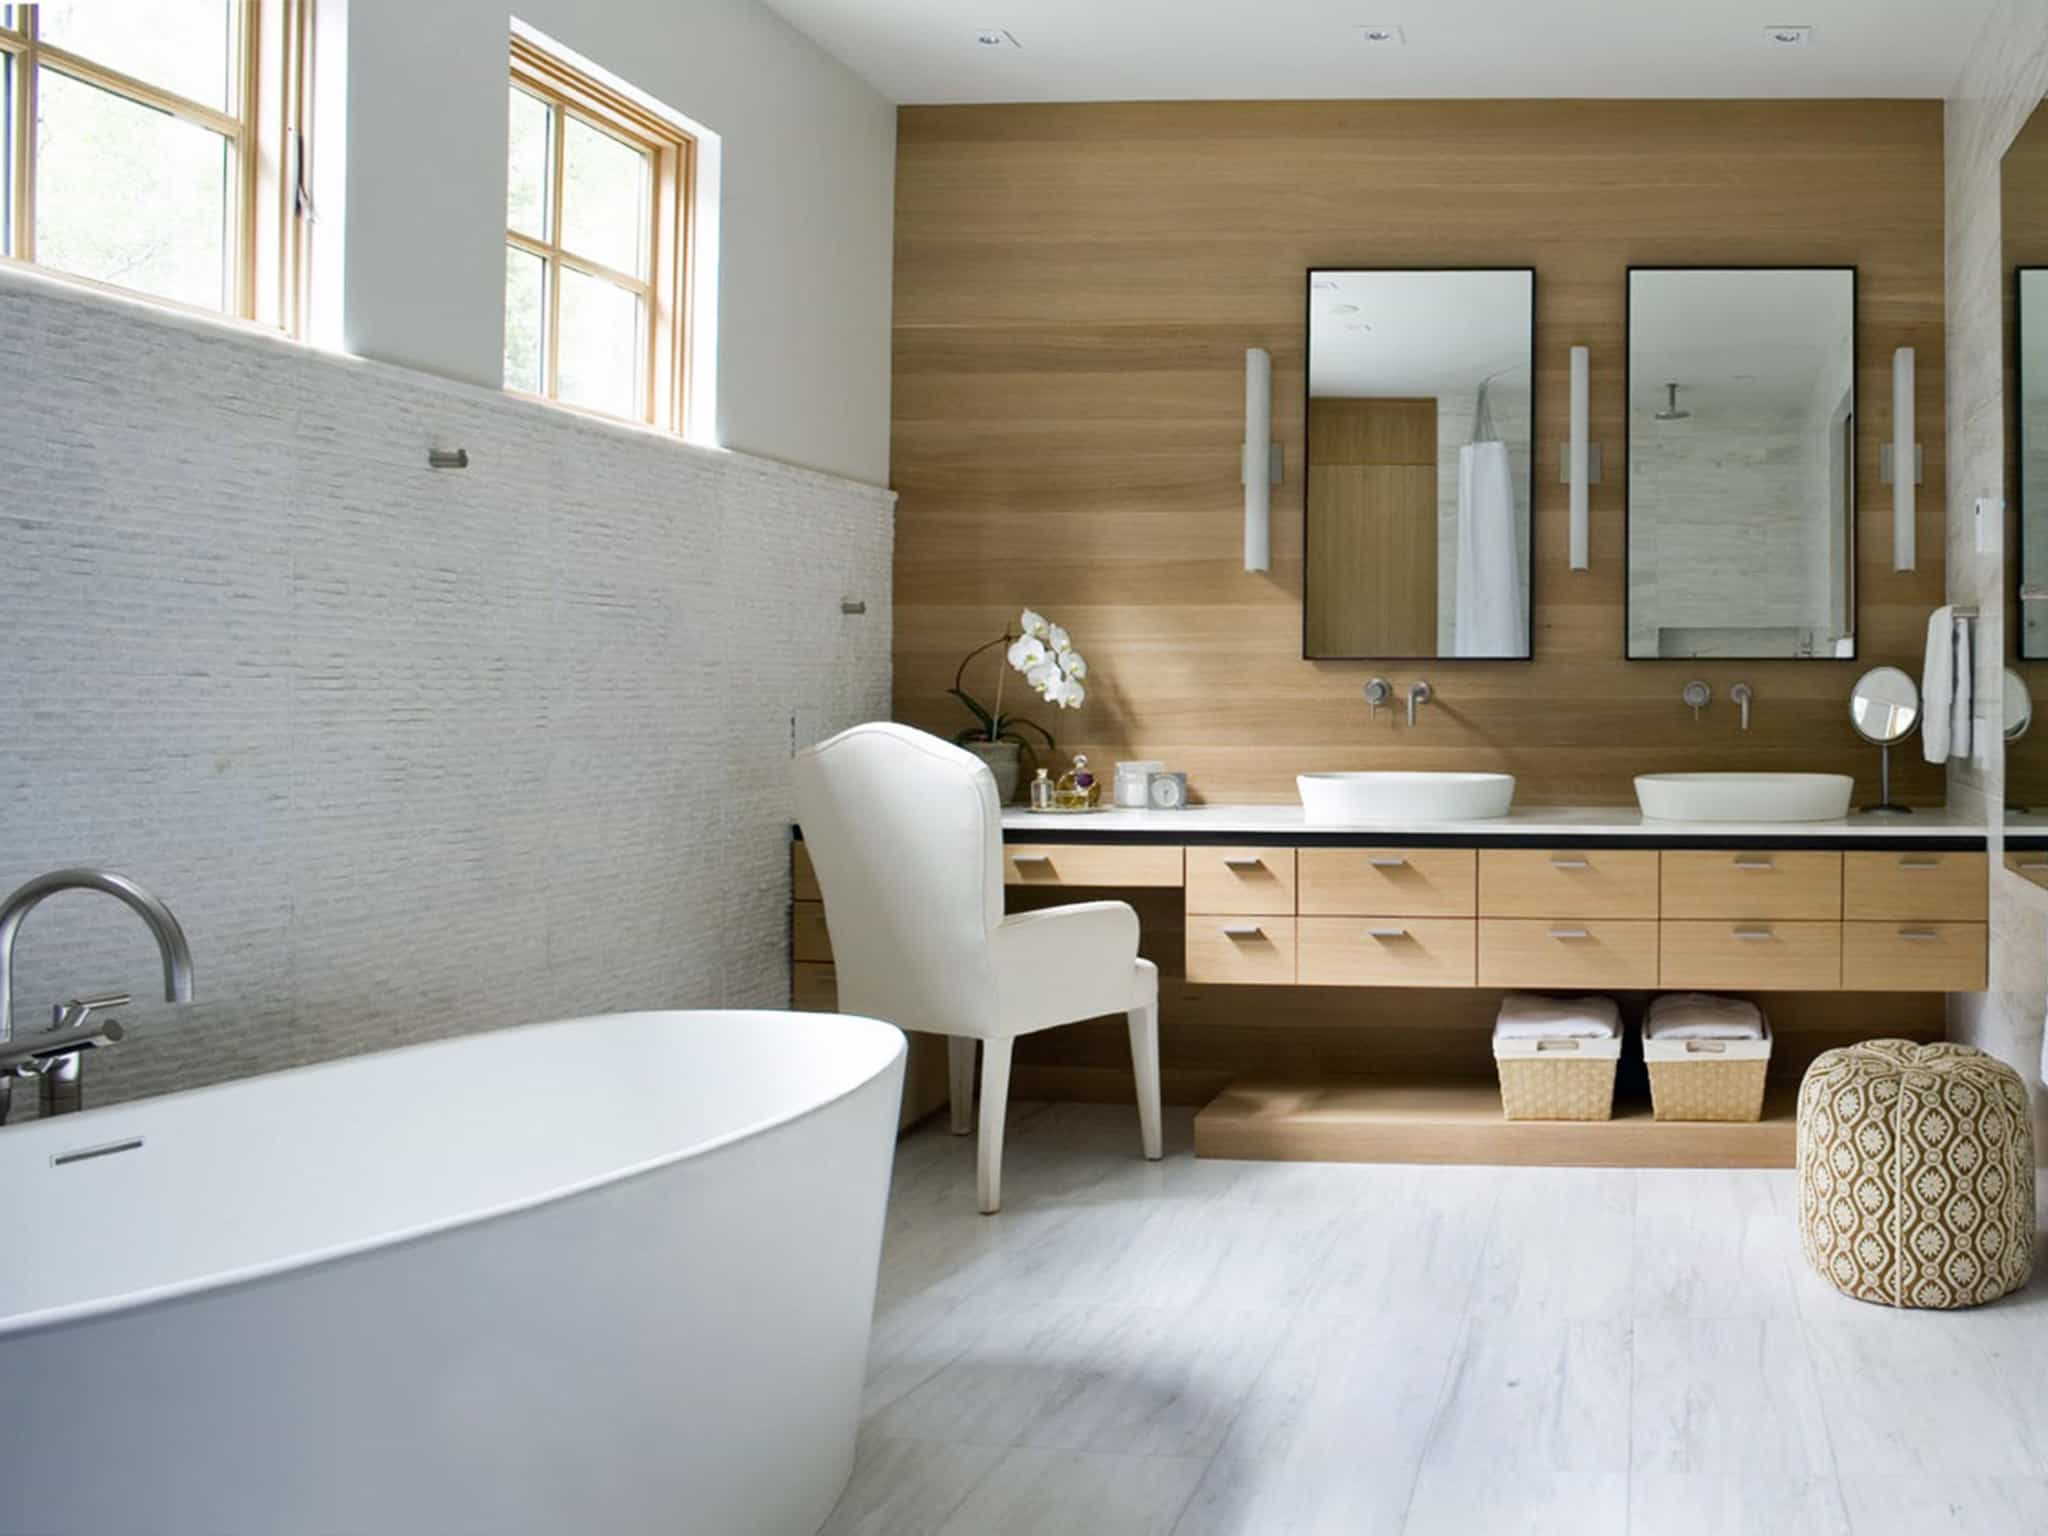 Minimalist Spa Style Bathroom Interior Furniture And Decor (View 2 of 29)